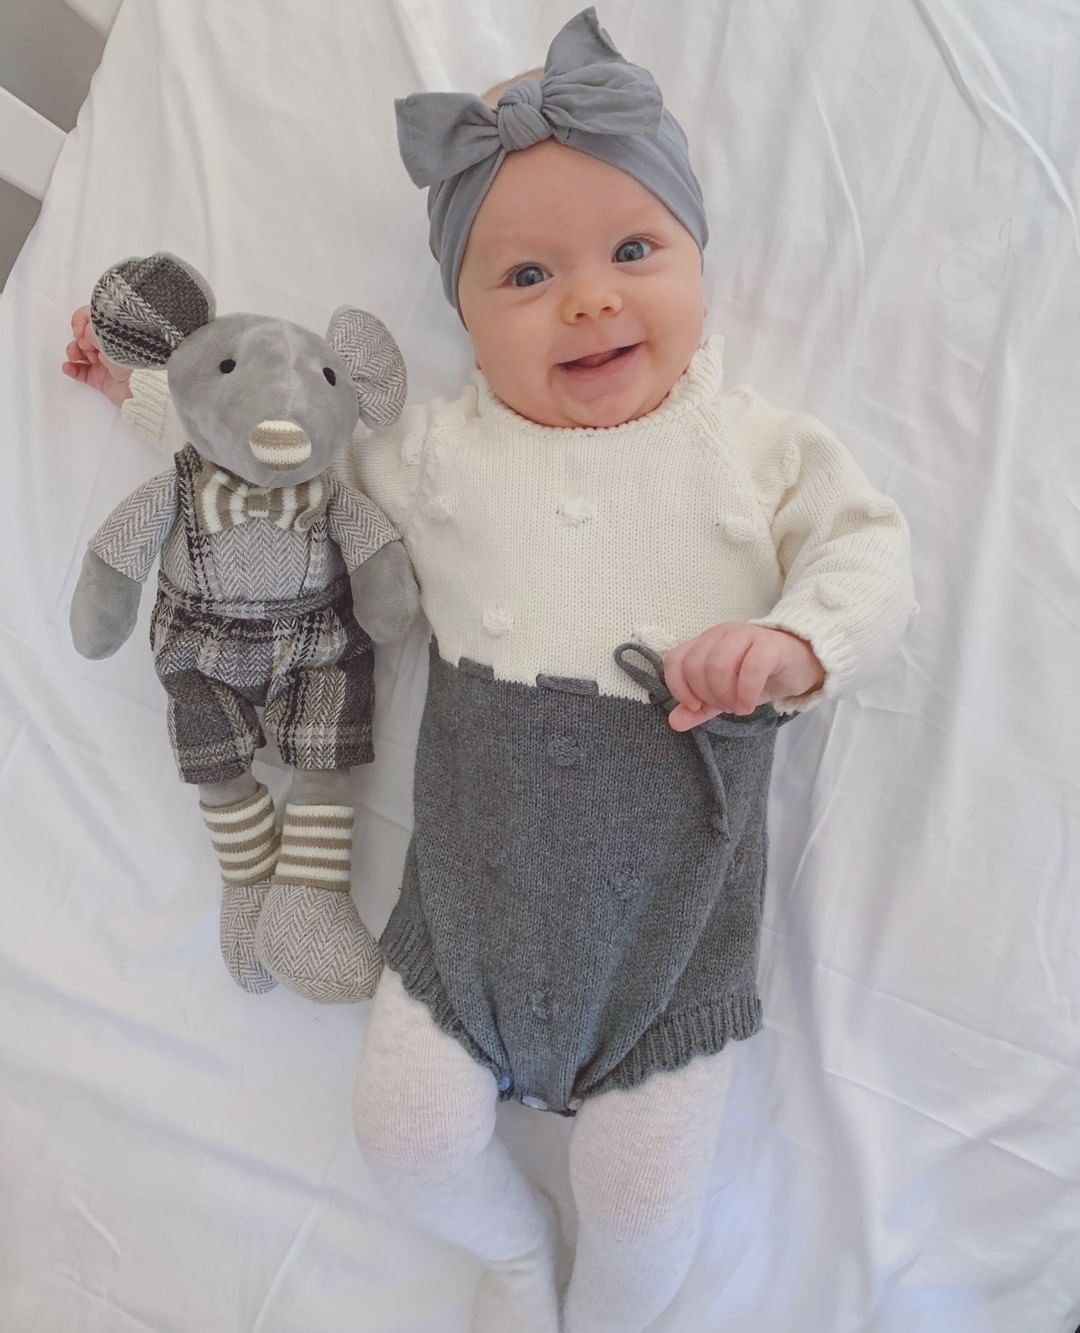 It's only Thursday but baby Ari and her little friend are sooooo ready for the weekend🥰  She's wearing our Rumi Romper in Gray (Hello, muted color palette. Can't get enough how cute and clean this is!)🤩❤️  📸 Thank you mommy @radikaraa for sending this to us! Sooo love it!🥰  #ashmiandco #babystore #babyfashion #babyclothing #babystyle #babyaccessories #kidsclothing #fashionbaby #kidsclothingstore #trendybaby #babieswithstyle #trendykids #babyshower #babygirl #babyboy #babybump #etsybaby